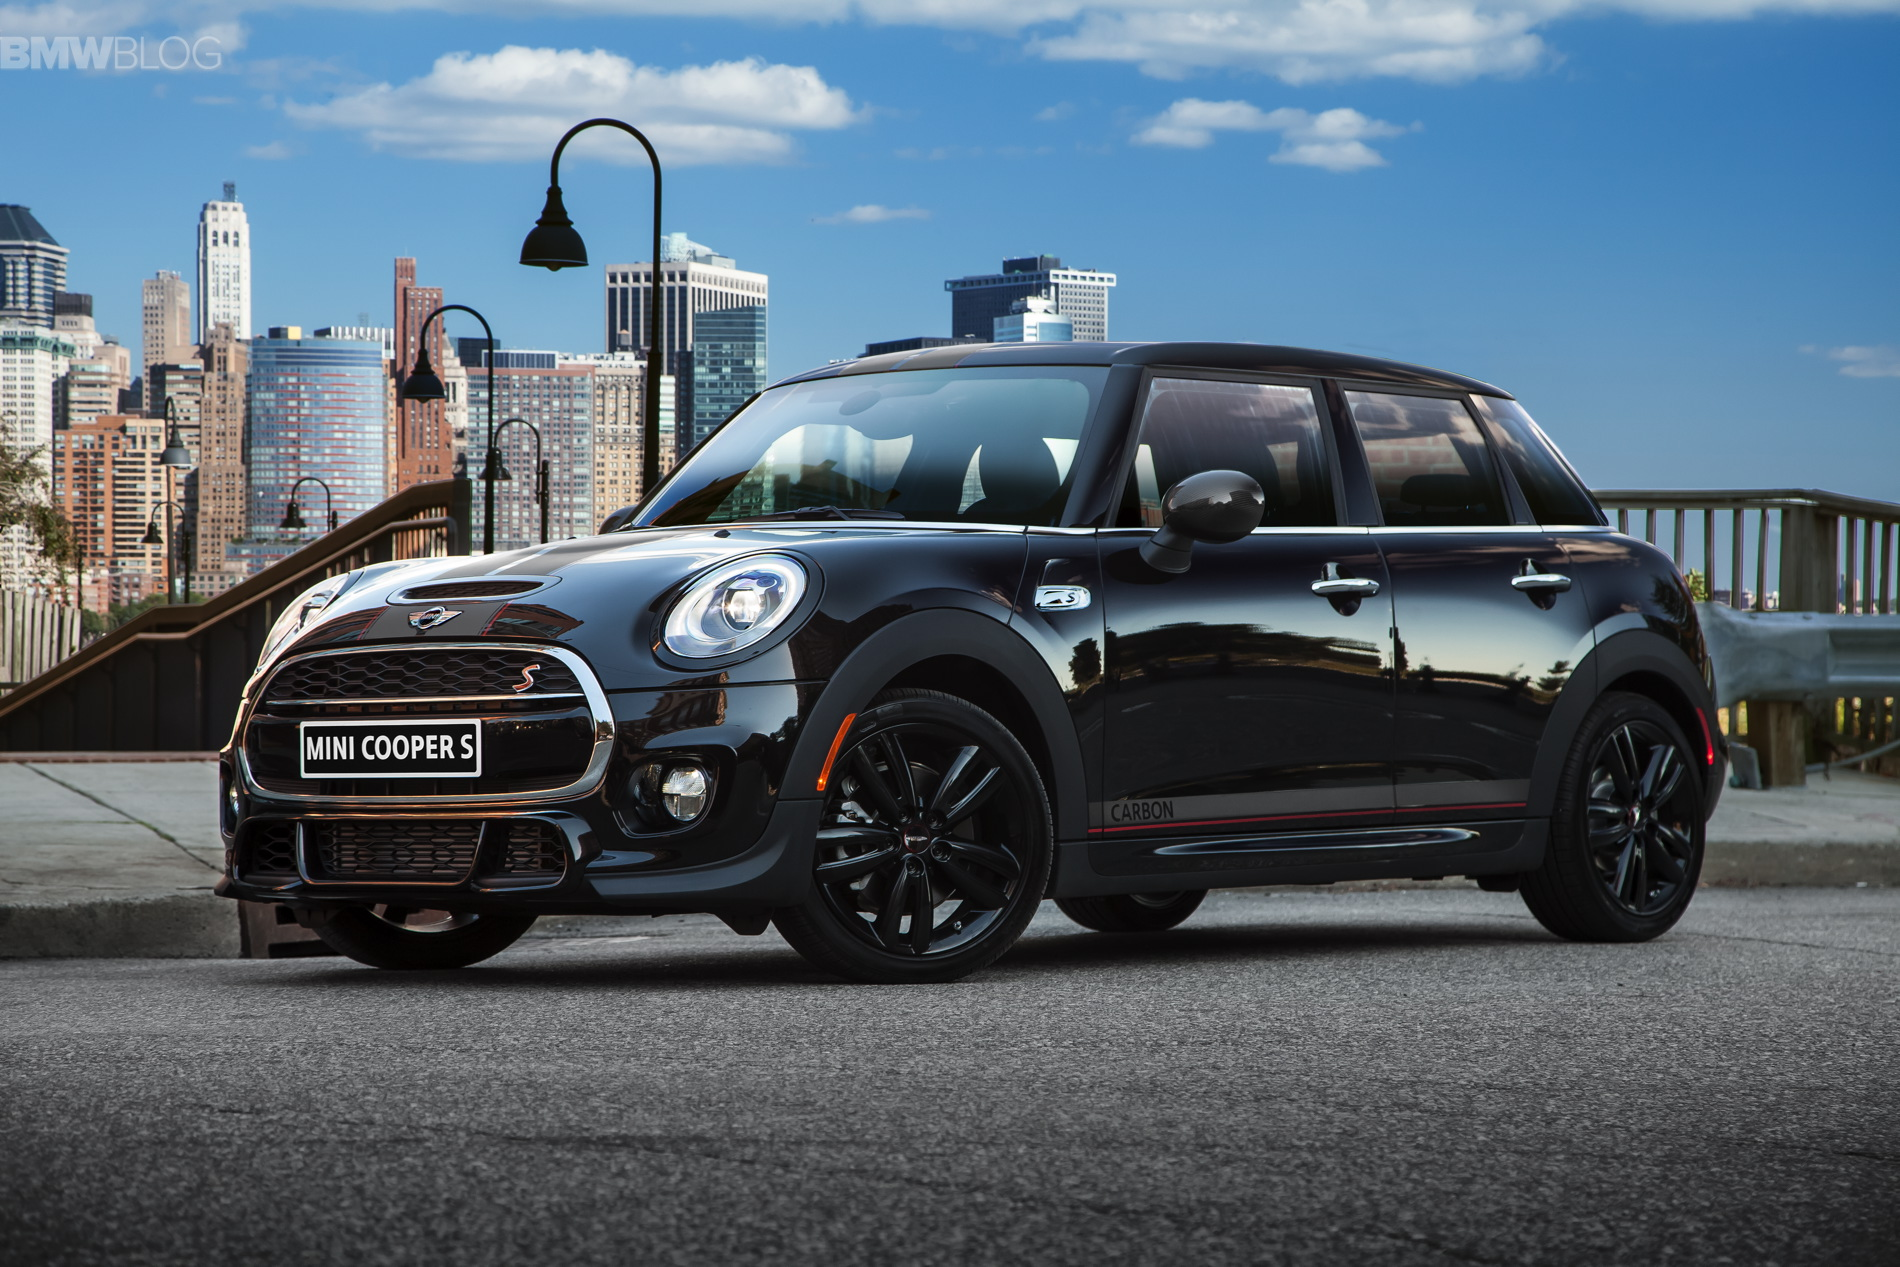 Mini Cooper Usa >> MINI launches the Cooper S Carbon Edition